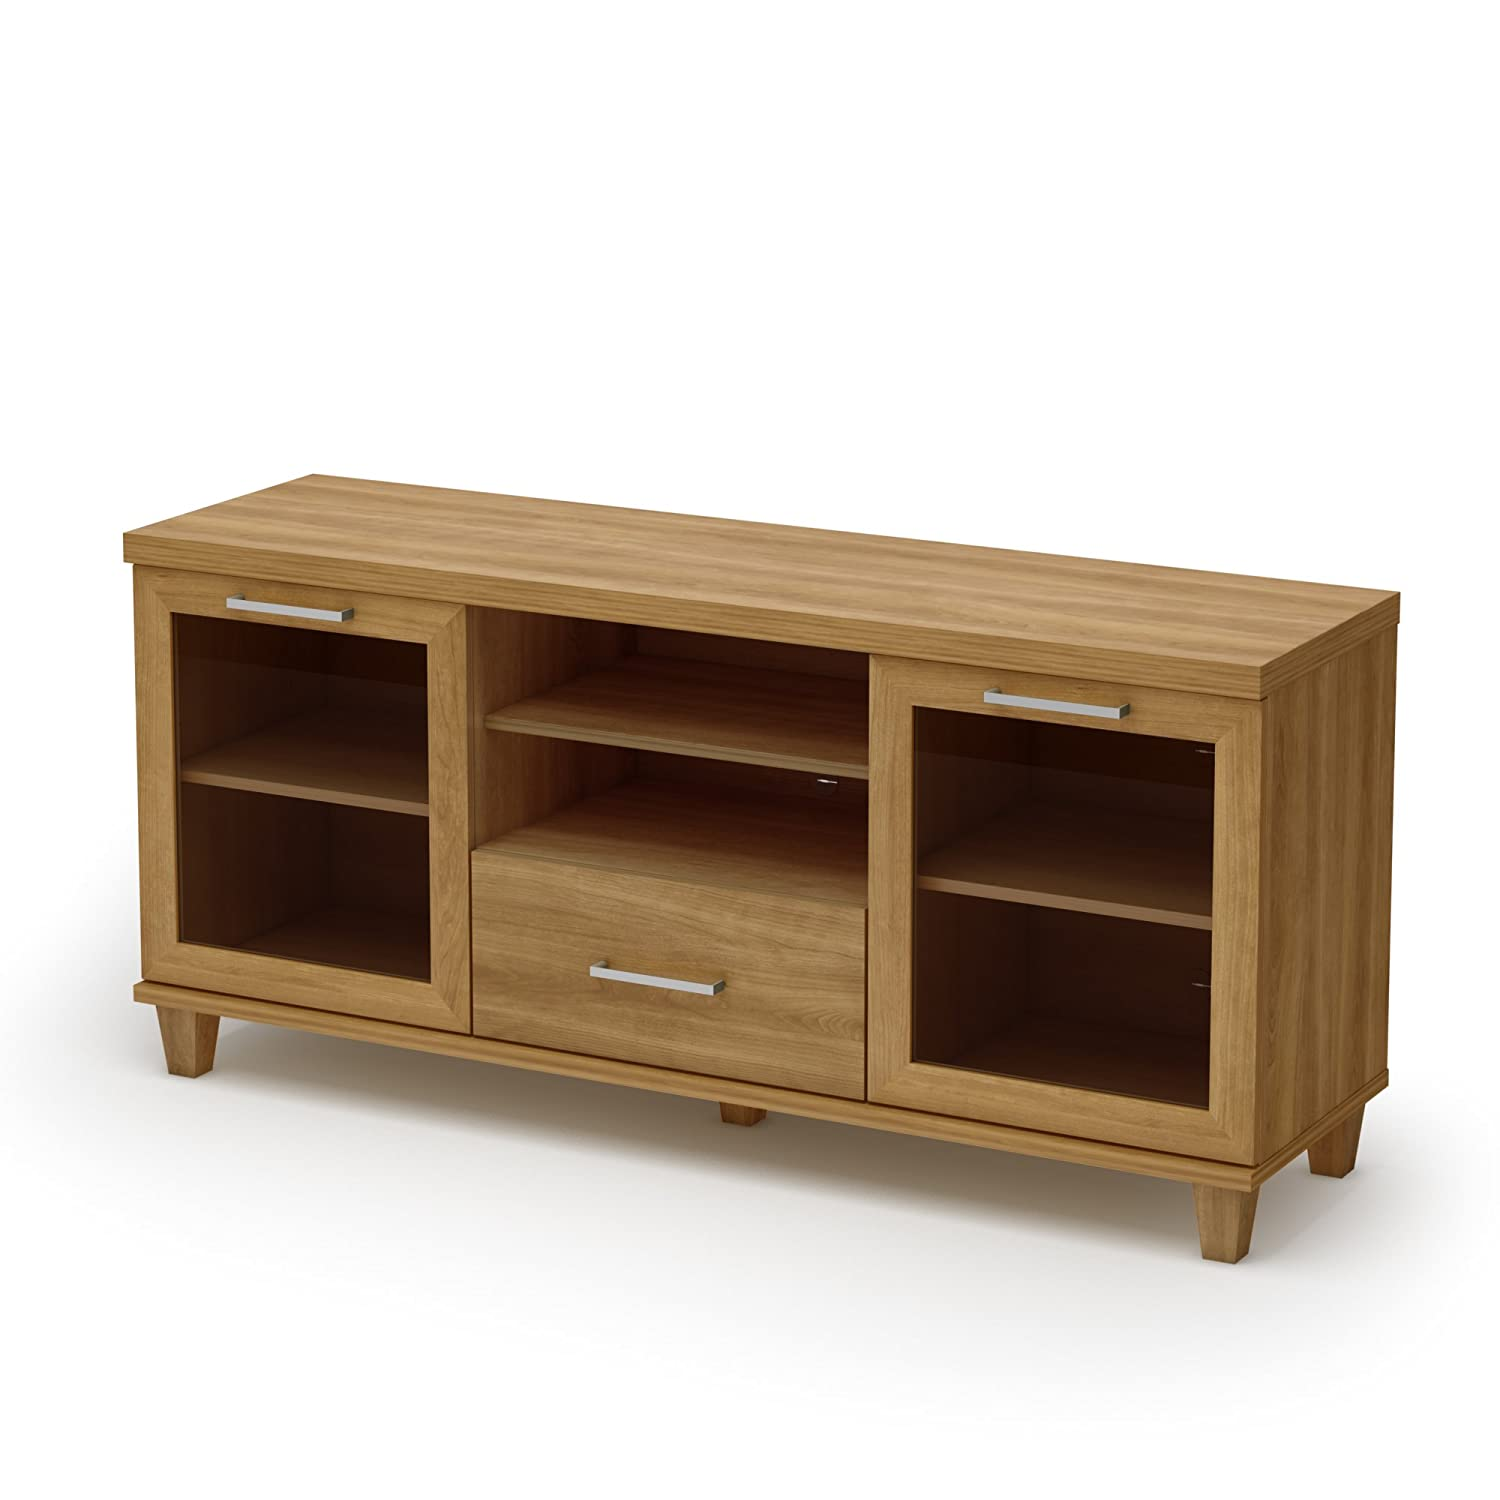 GreenHome123 Contemporary Home Entertainment Center TV Stand in Modern Harvest Maple Finish at Sears.com